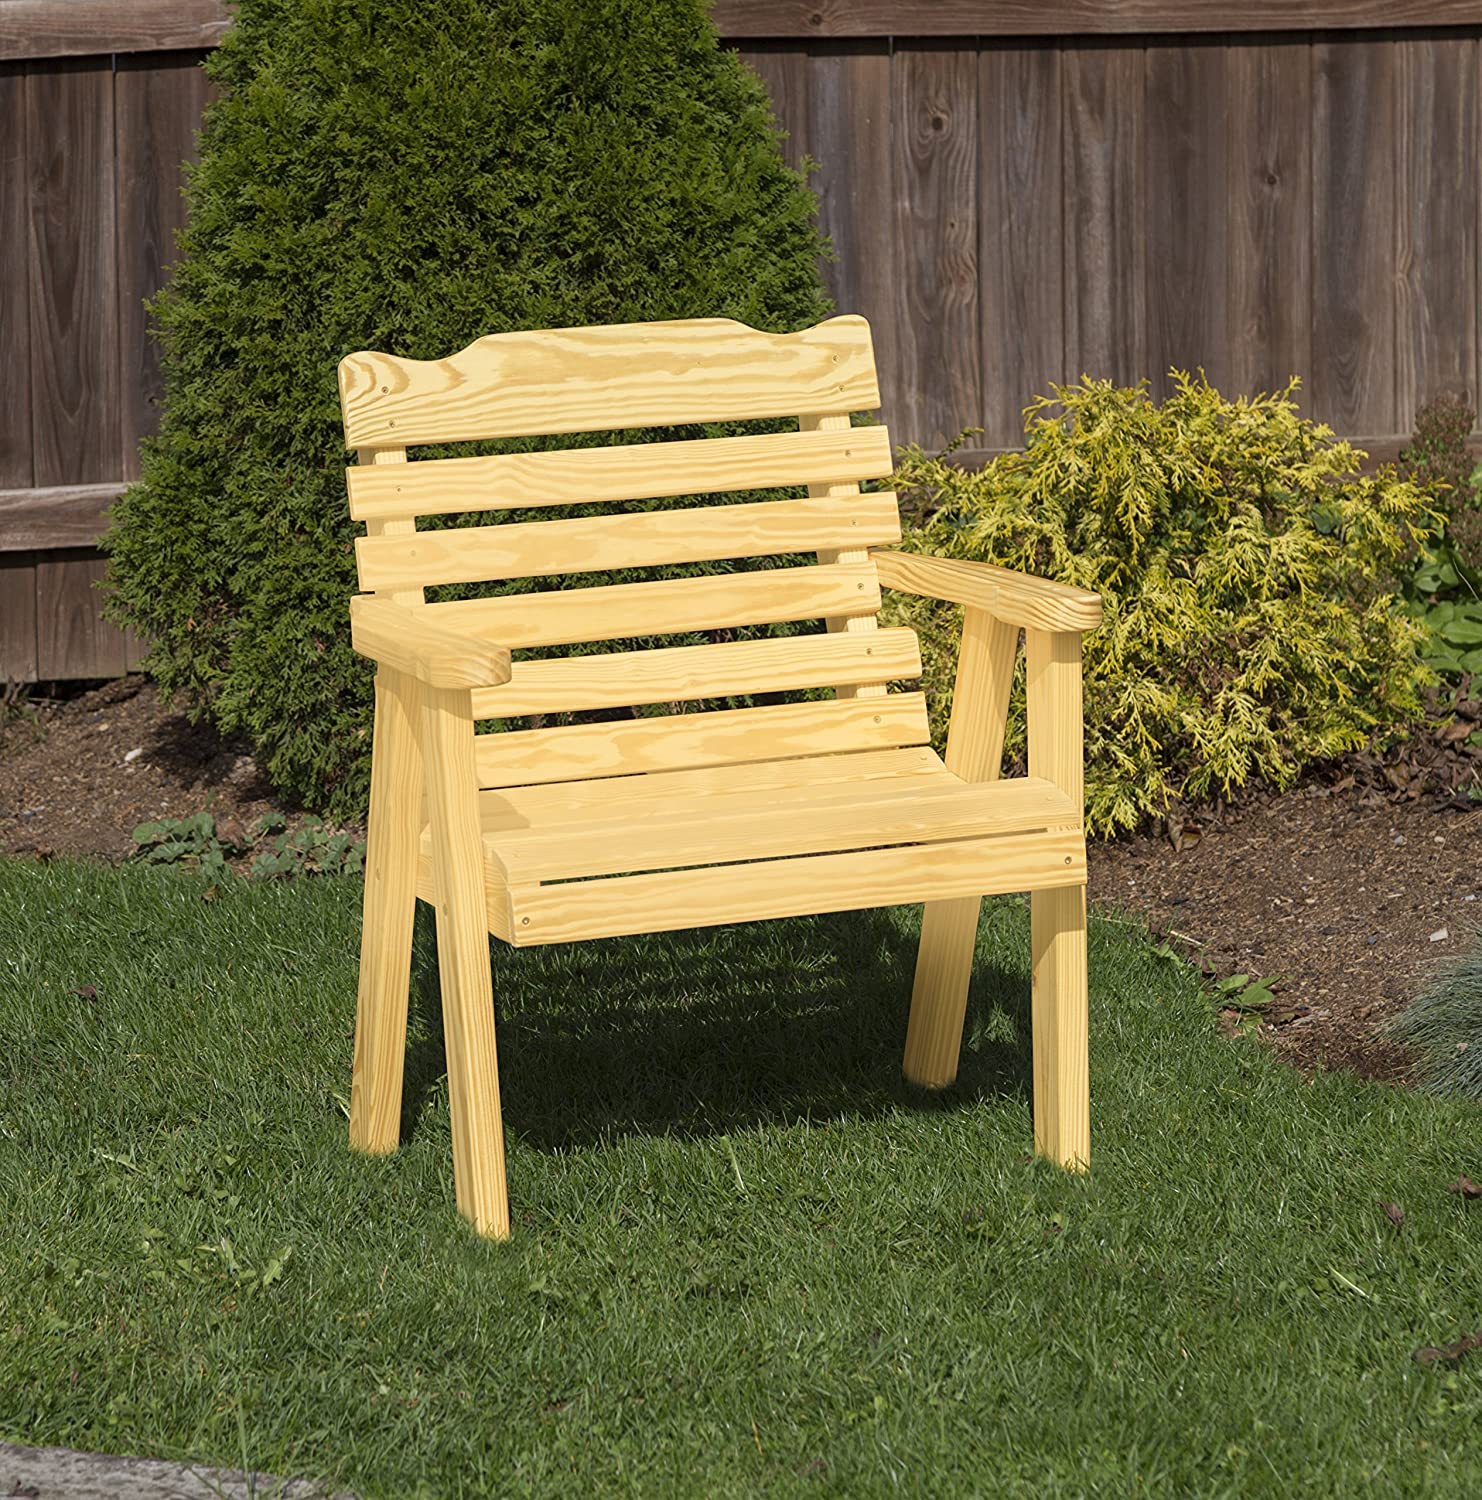 Amish Heavy Duty 800 Lb Classic Park Style Pressure Treated Garden Patio Outdoor Bench Chair 2 FEET Gold-Made in USA